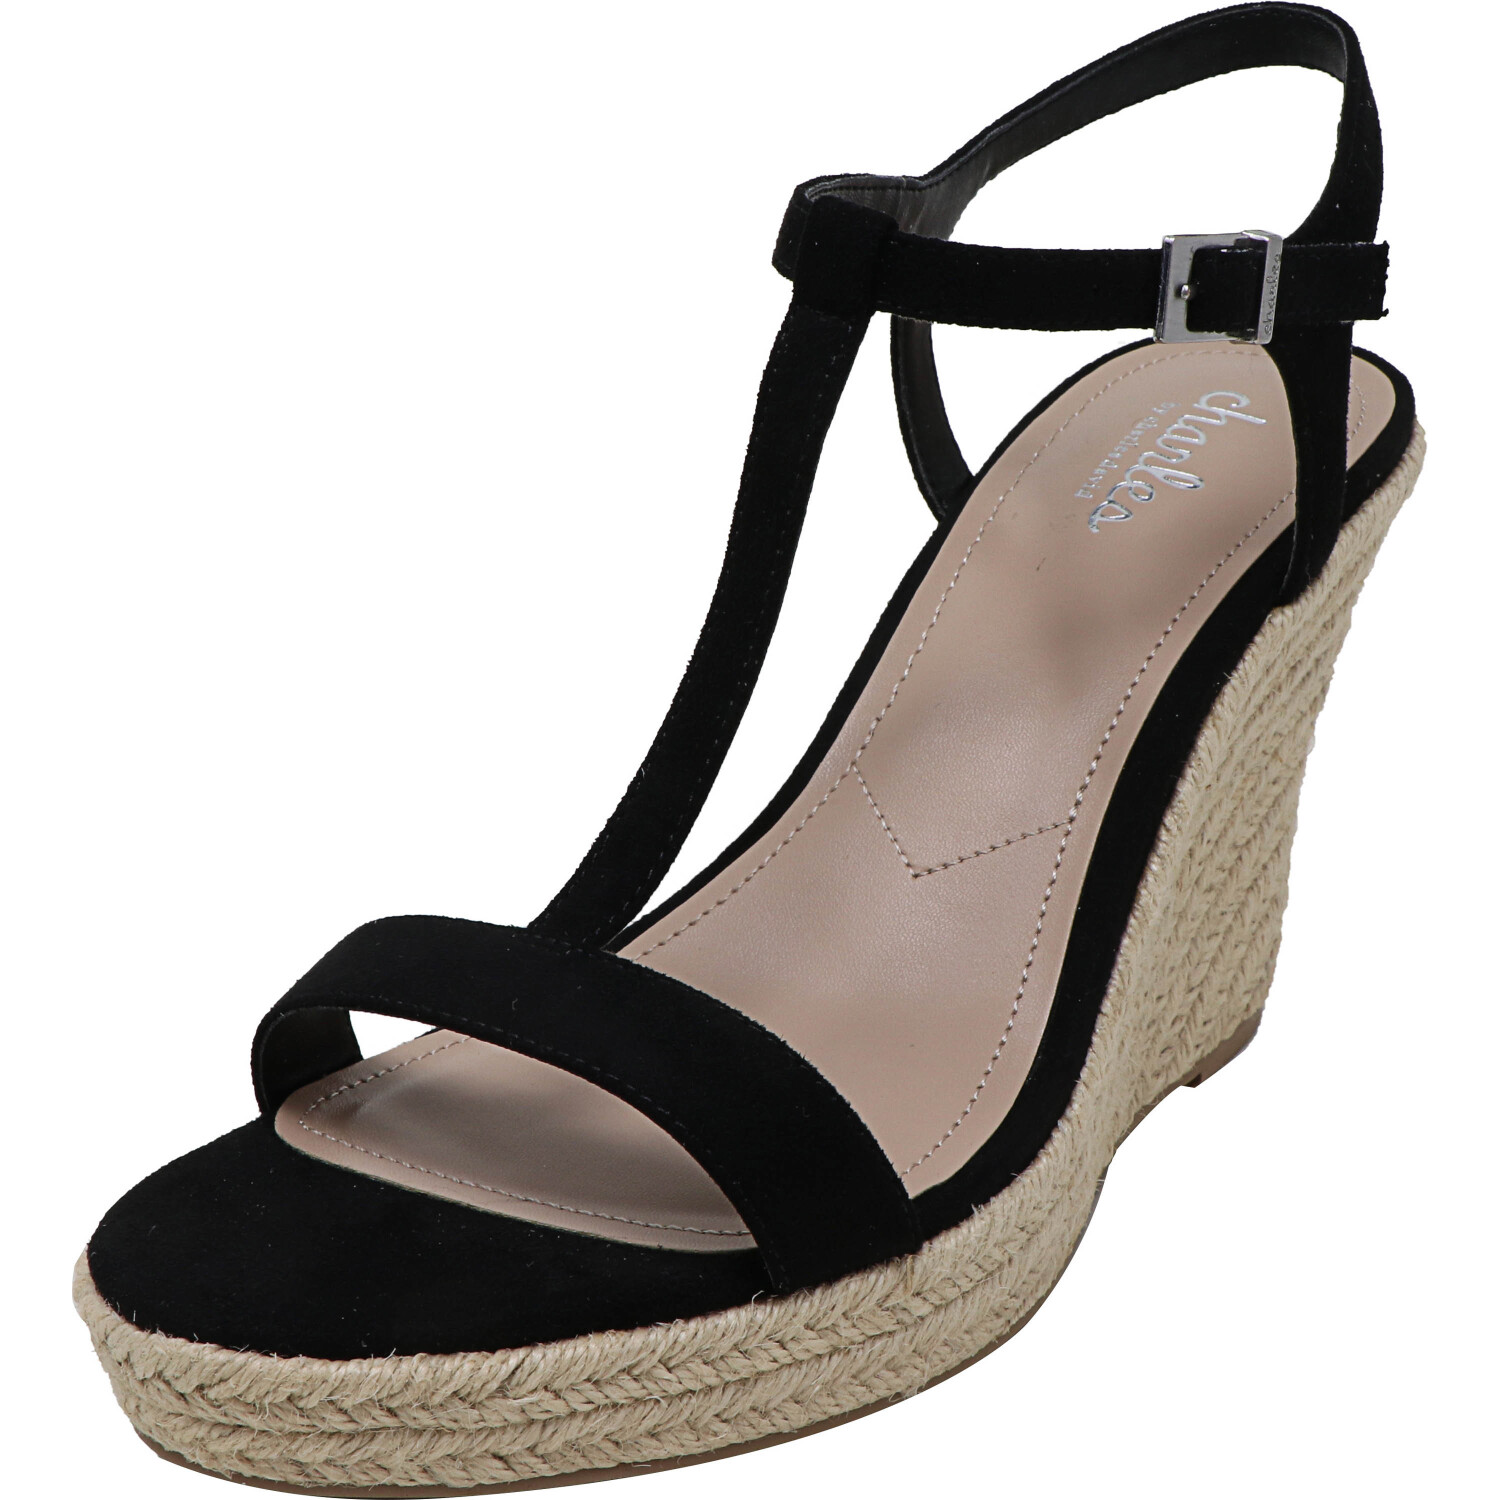 Charles By David Women's Lili Microsuede Black Ankle-High Wedged Sandal - 9.5M